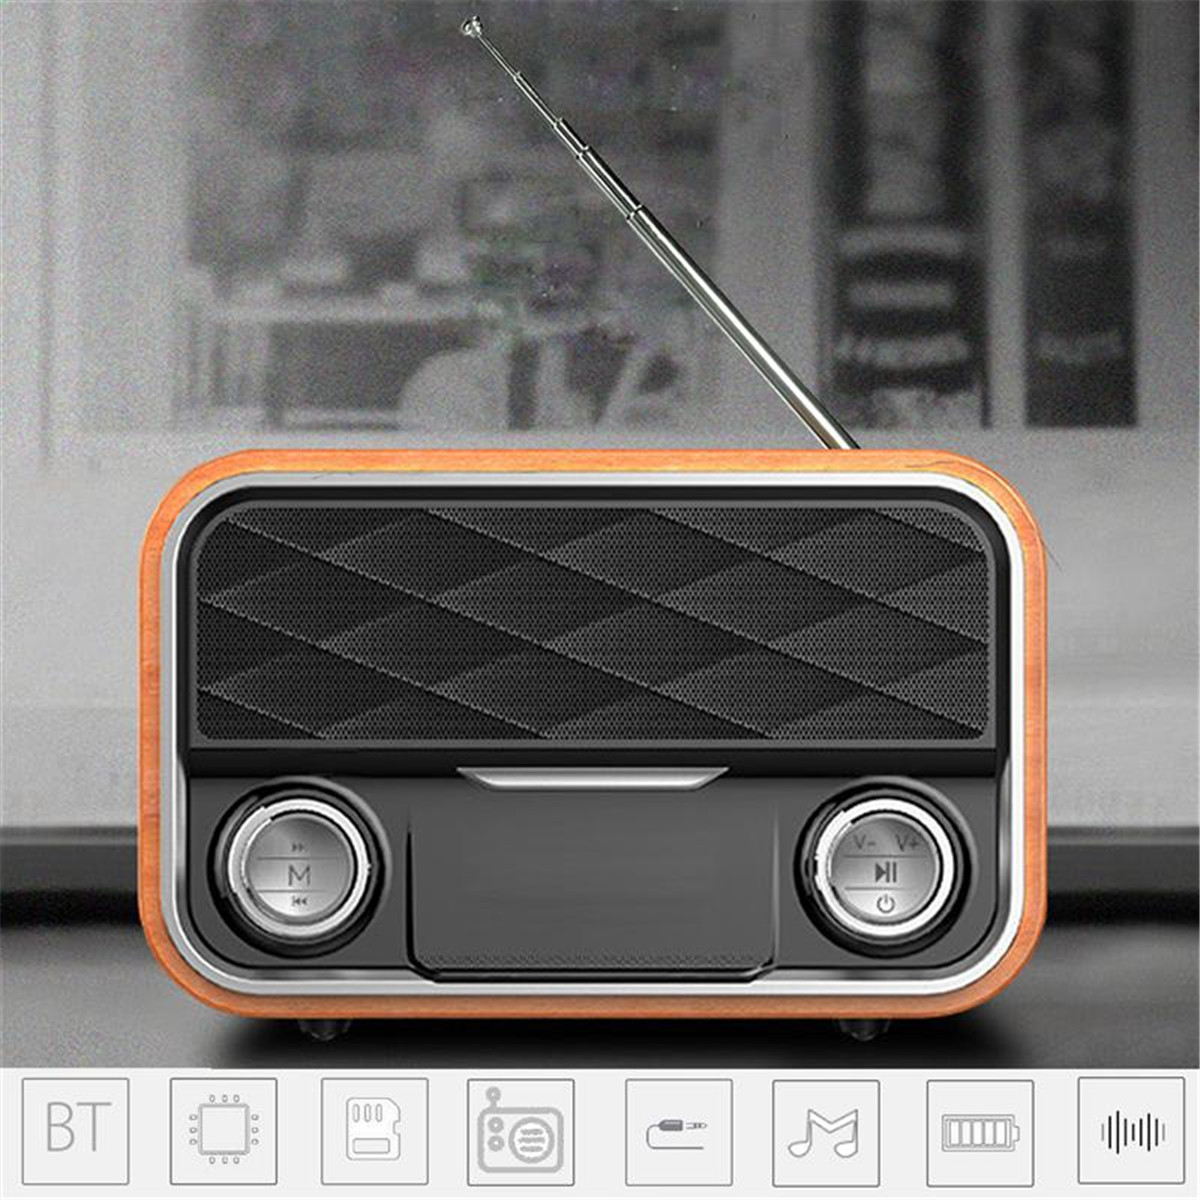 Wooden Bluetooth Speaker FM Radio Portable Audio Double Units Aux-in Stereo Bass Subwoofer Remote Control HIFI Wireless Speaker outdoor portable bluetooth speaker wireless waterproof bass loud speaker 3d hifi stereo subwoofer support tf card fm radio